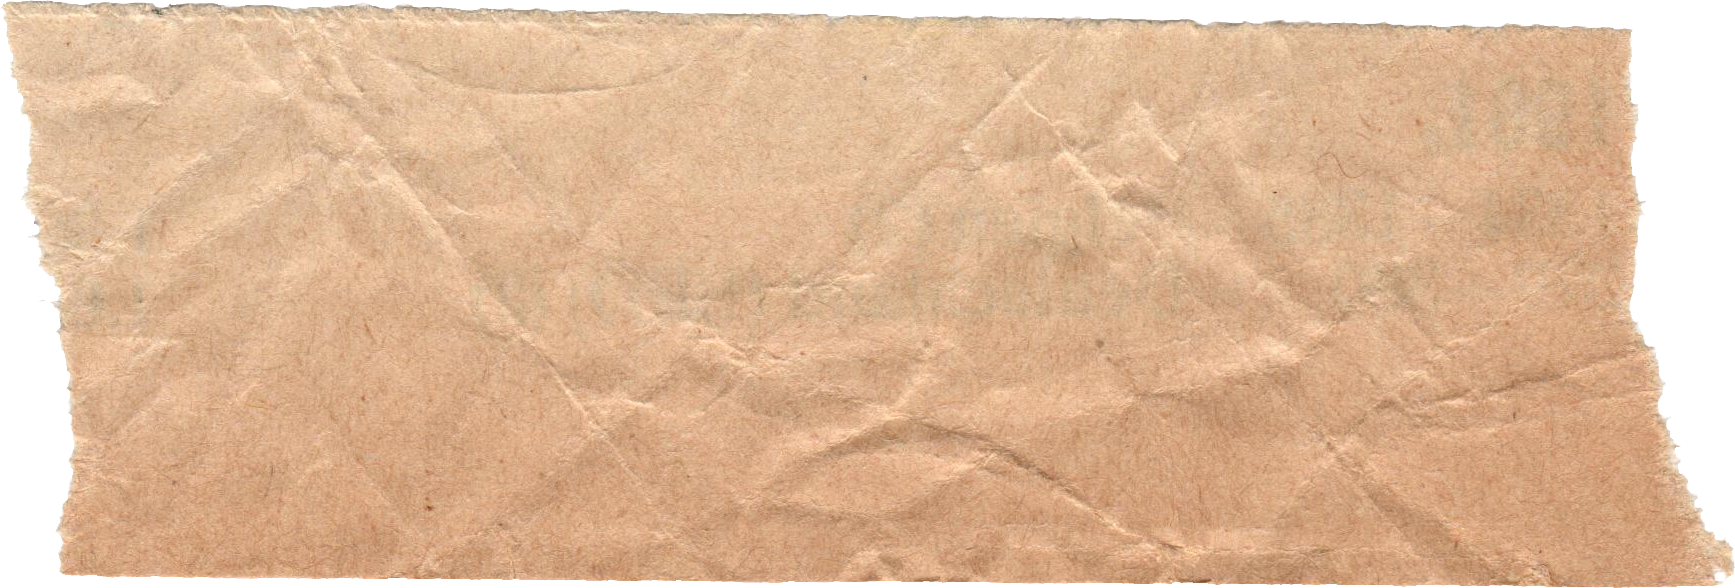 Pictures Of Old Brown Cardboard Paper image #48277